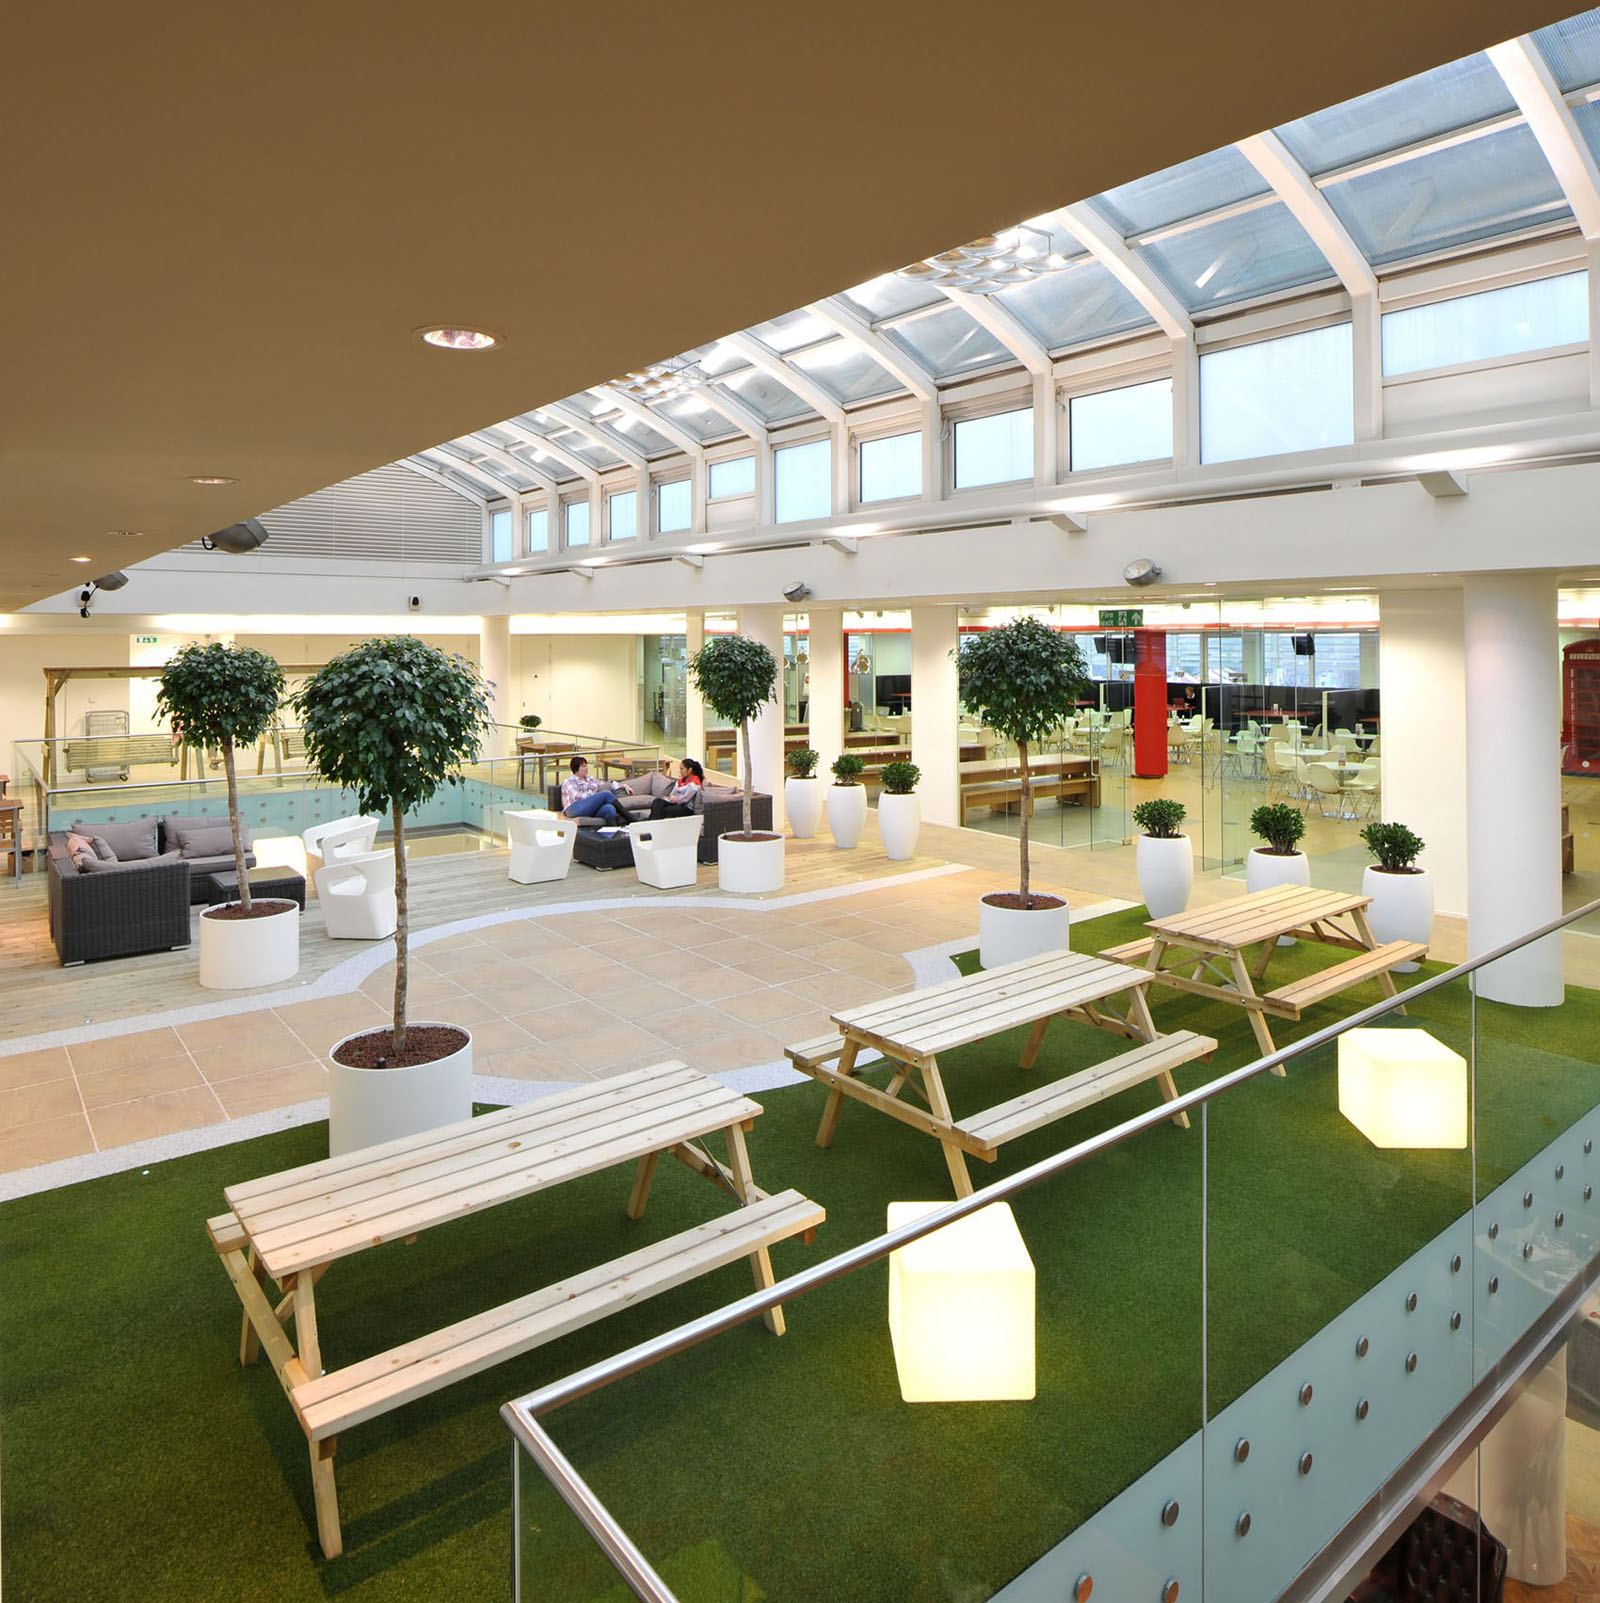 Office Interior Design Inspiration: Inspiring British Office Interior Design At Rackspace